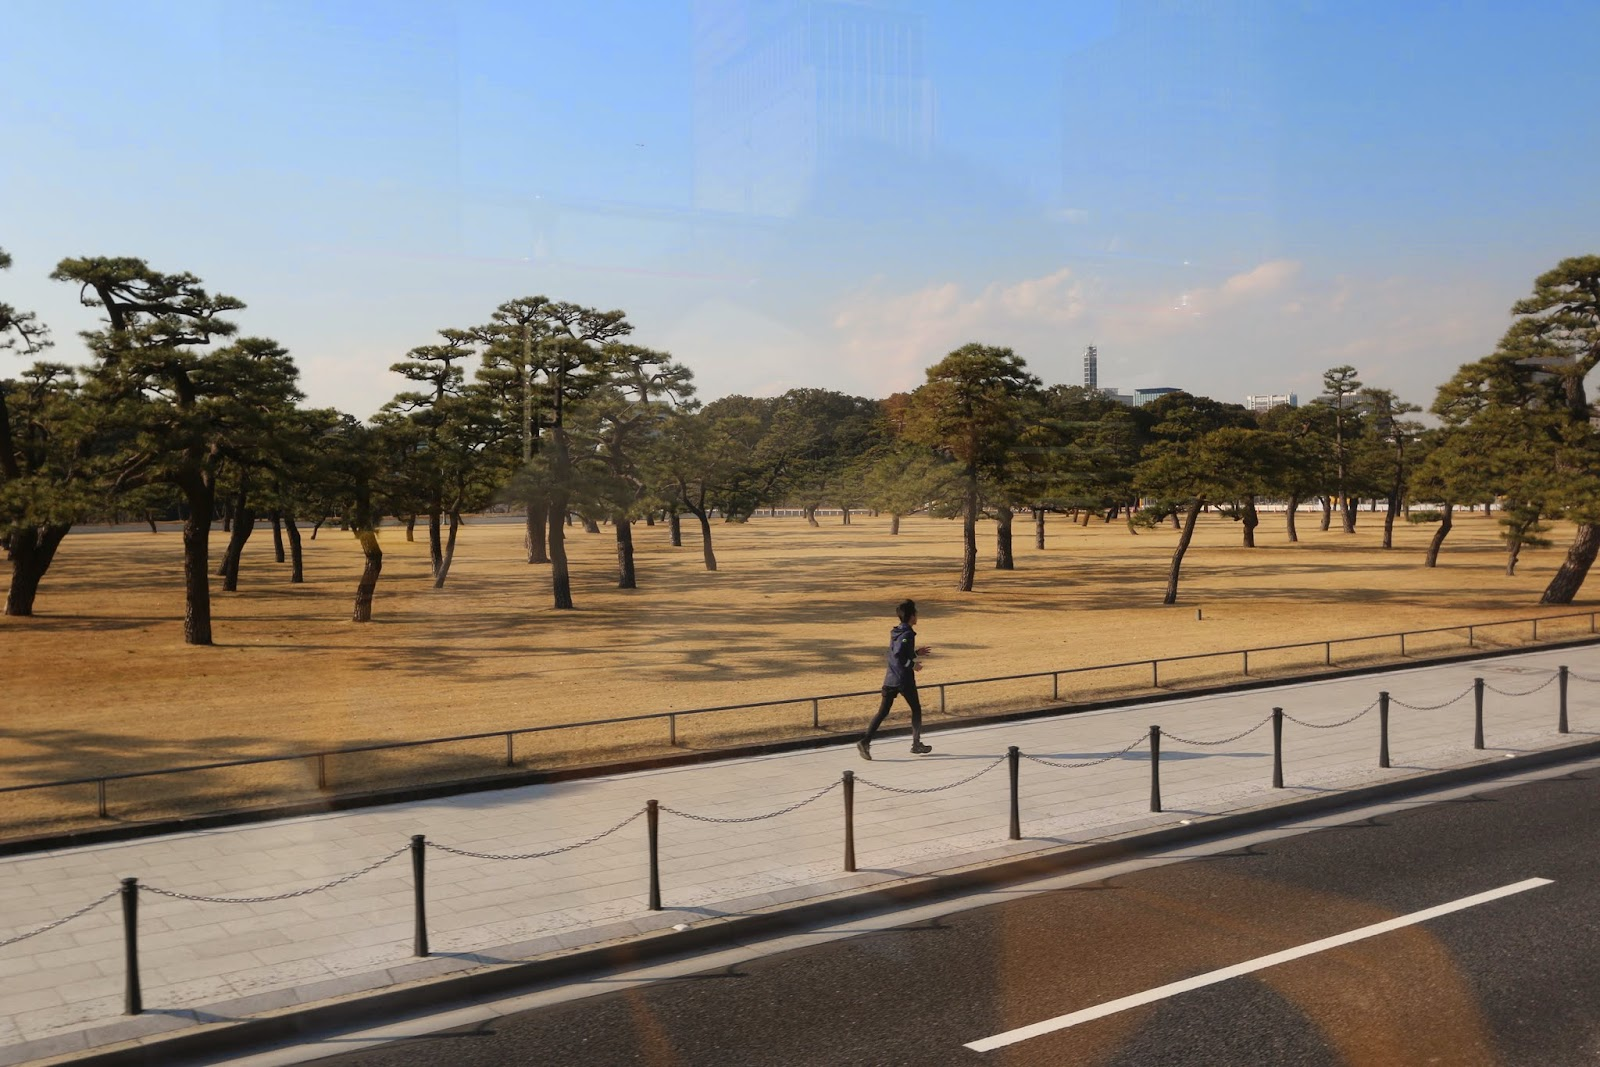 It looks like a painting (the backview from Imperial Palace) during Tokyo bus tour from Imperial Palace to Ginza and Marunouchi Course